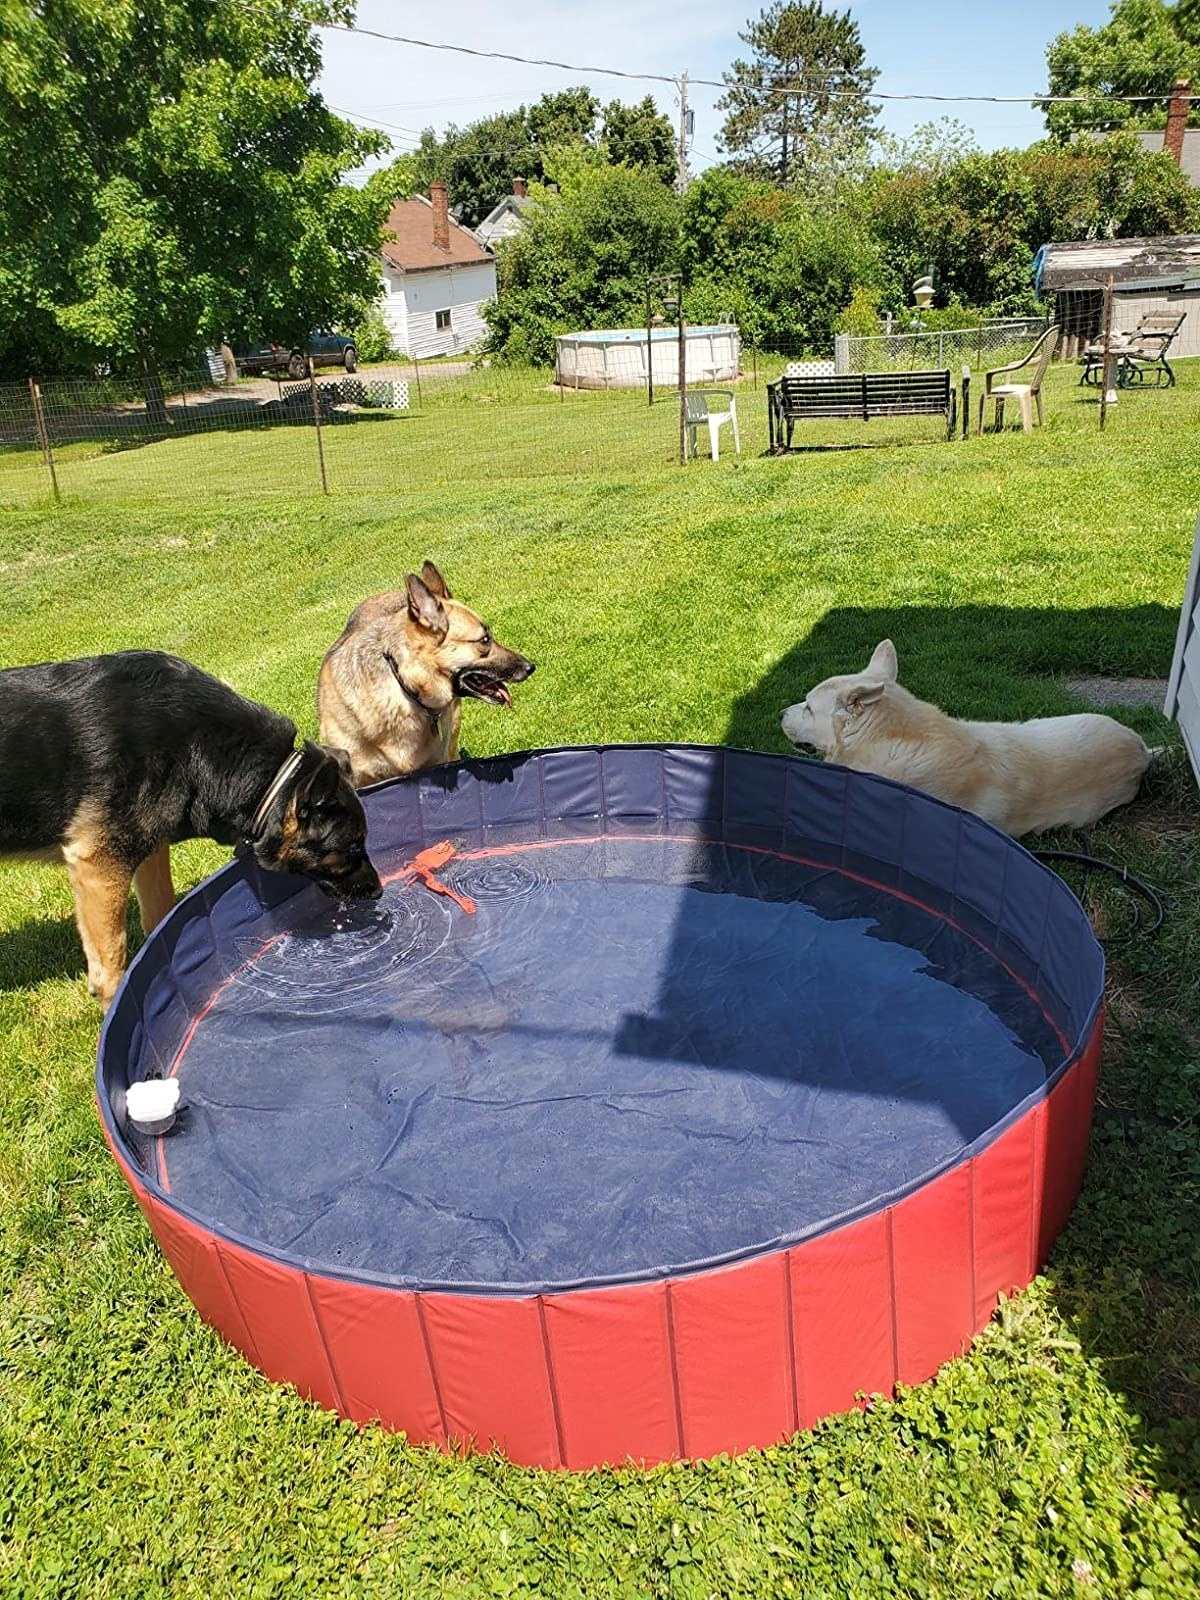 The pool, which is large enough for German Shepherds to play with